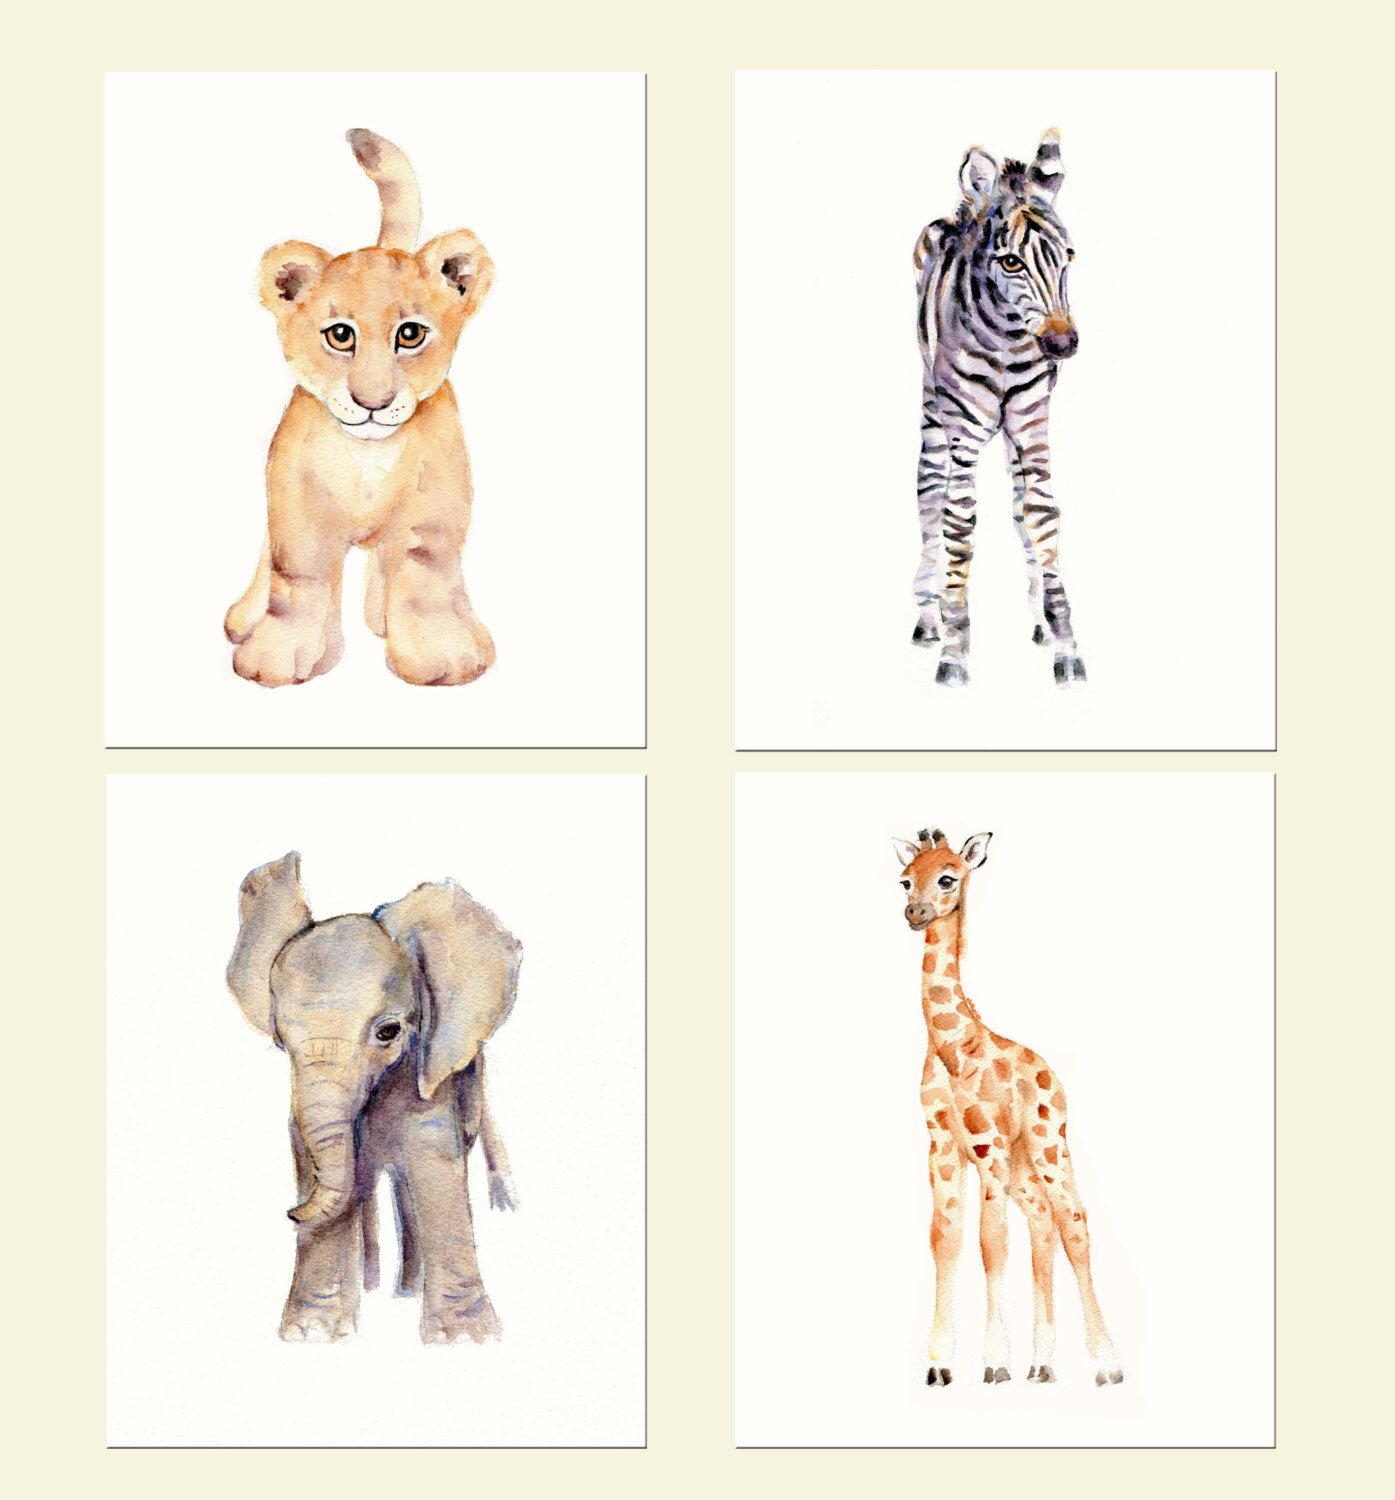 Elephant nursery wall art print mom baby dad by rizzleandrugee - Safari Nursery Print Set Four 8 X 10 Prints Watercolor Nursery Prints Lion Zebra Elephant And Giraffe Prints